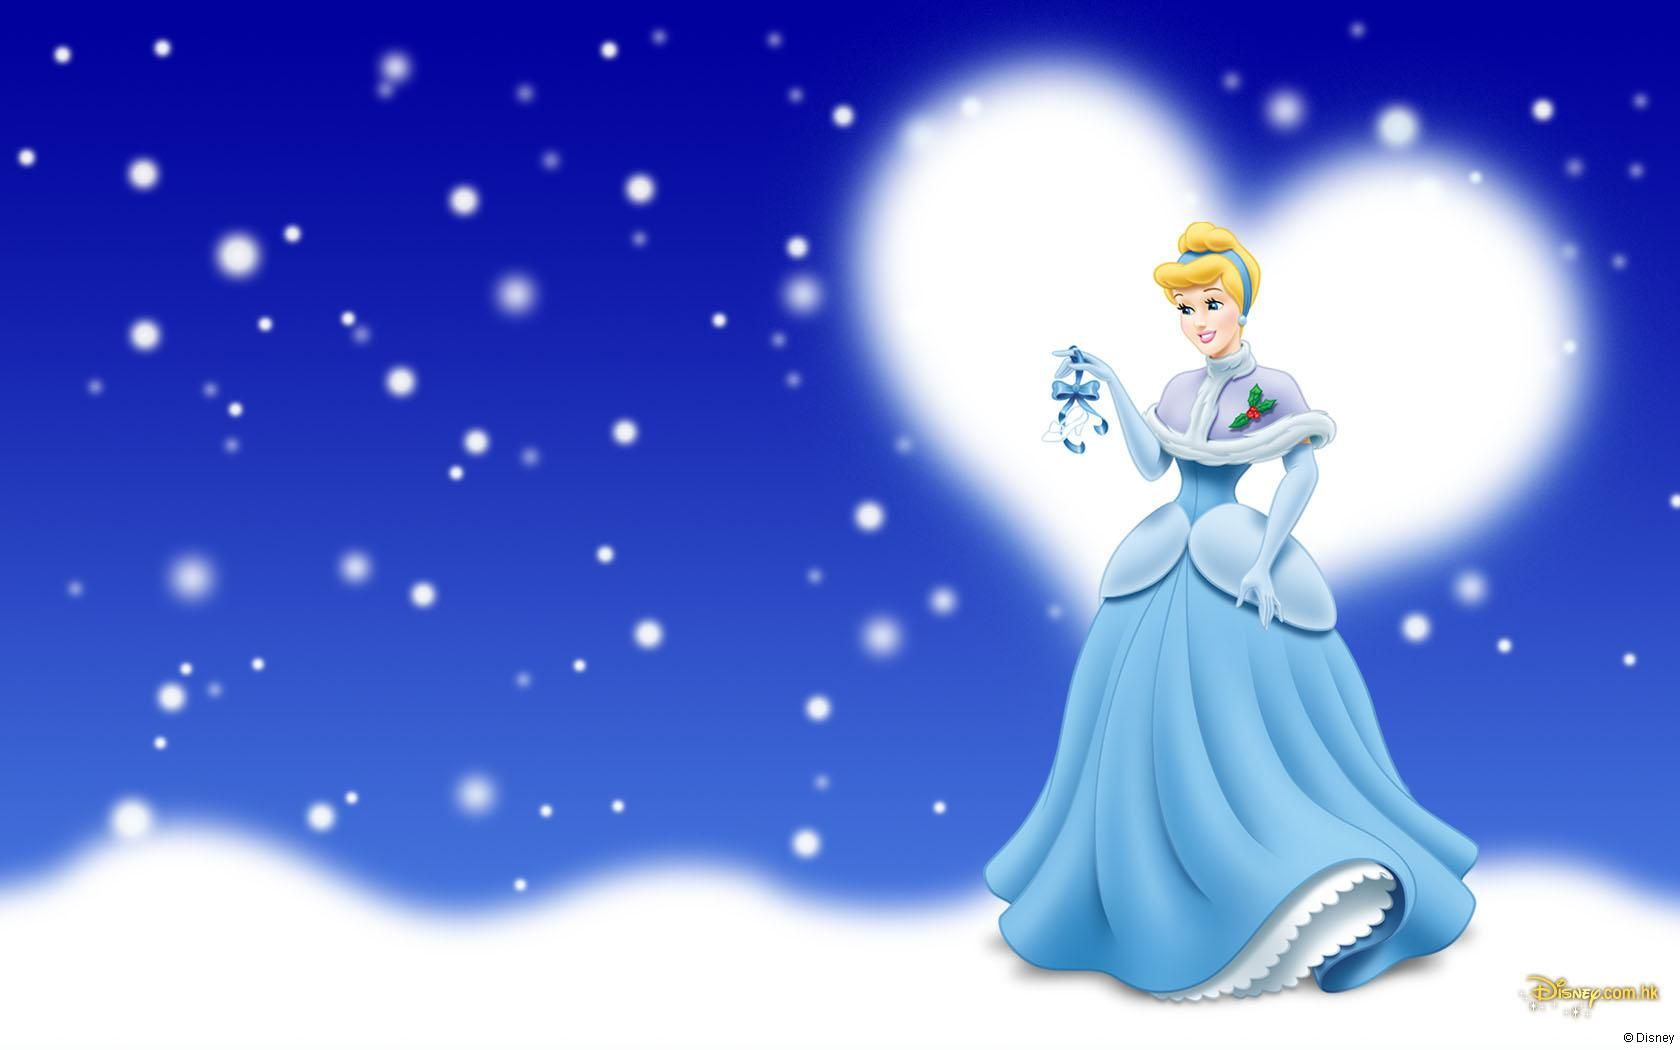 17 Disney Hd Wallpapers Backgrounds Wallpaper Abyss Cinderella Wallpaper Disney Princess Wallpaper Disney Princess Pictures